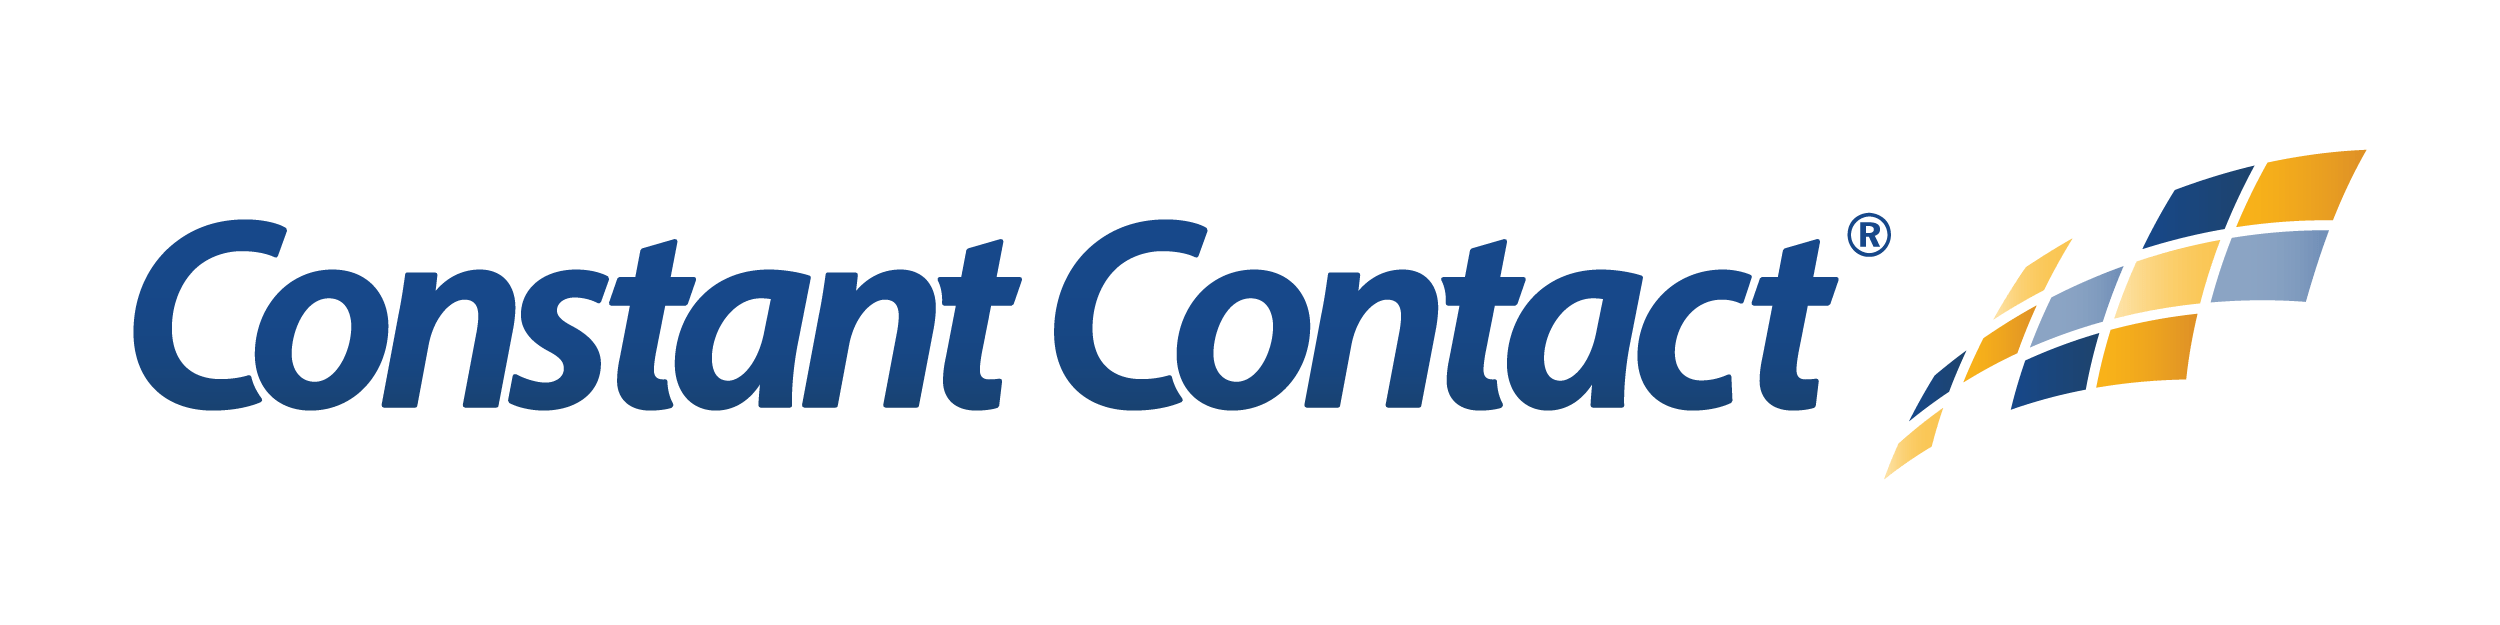 Contact Us - Constant Contact